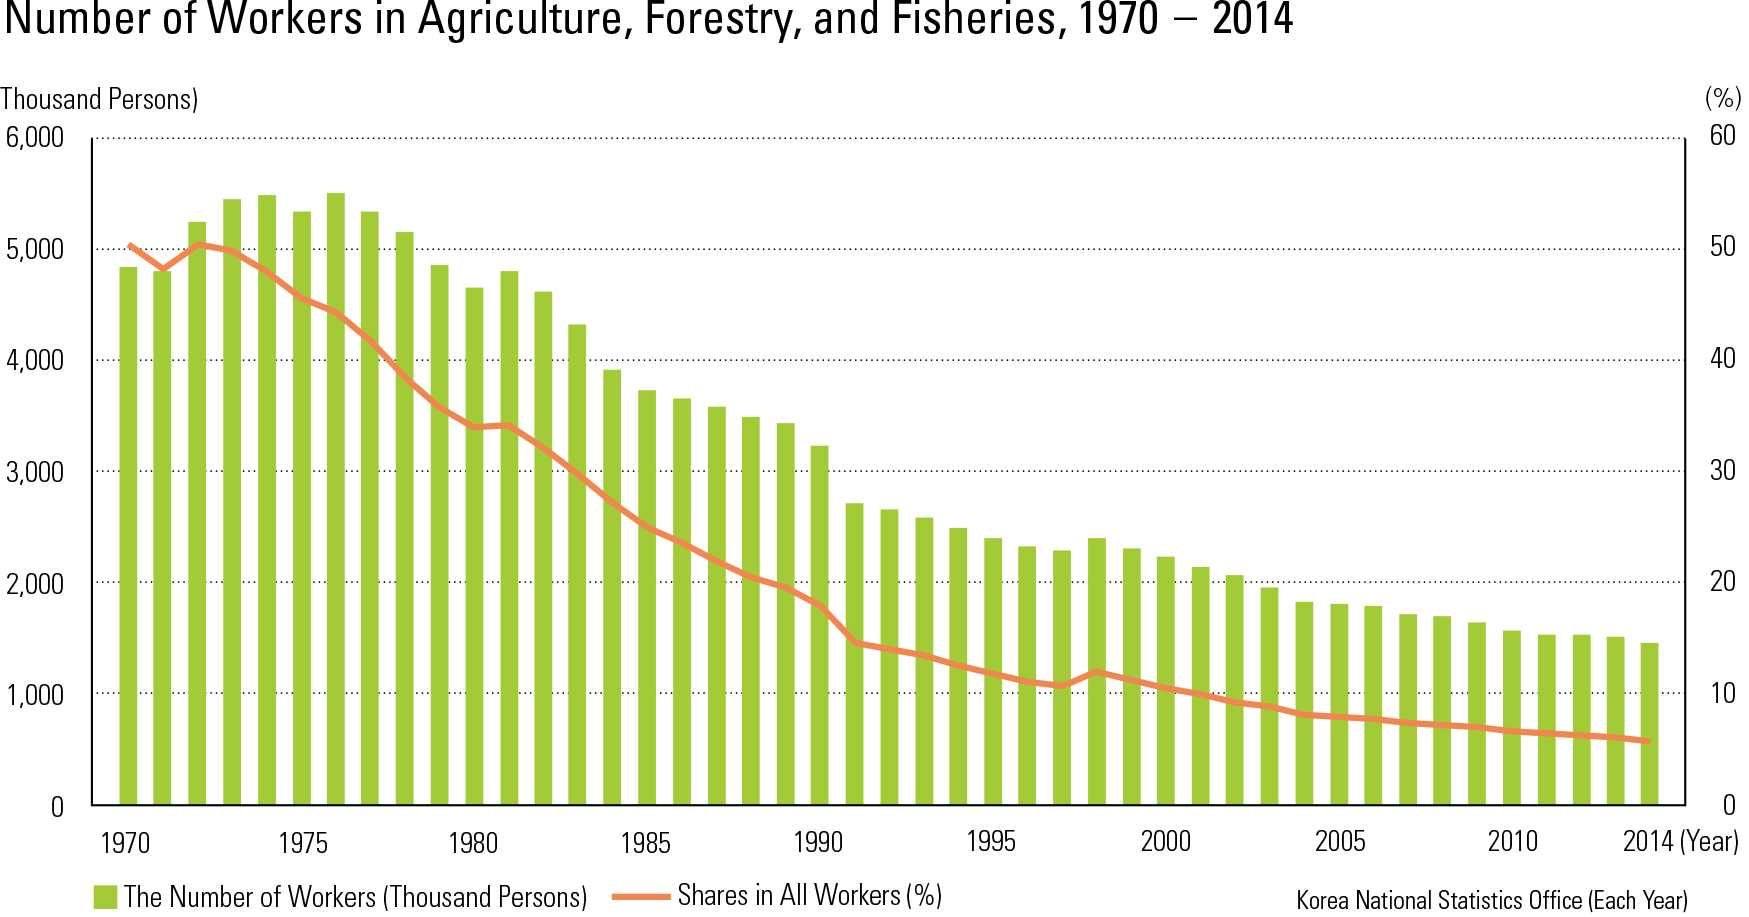 Number of Workers in Agriculture, Forestry, and Fisheries, 1970 – 2014